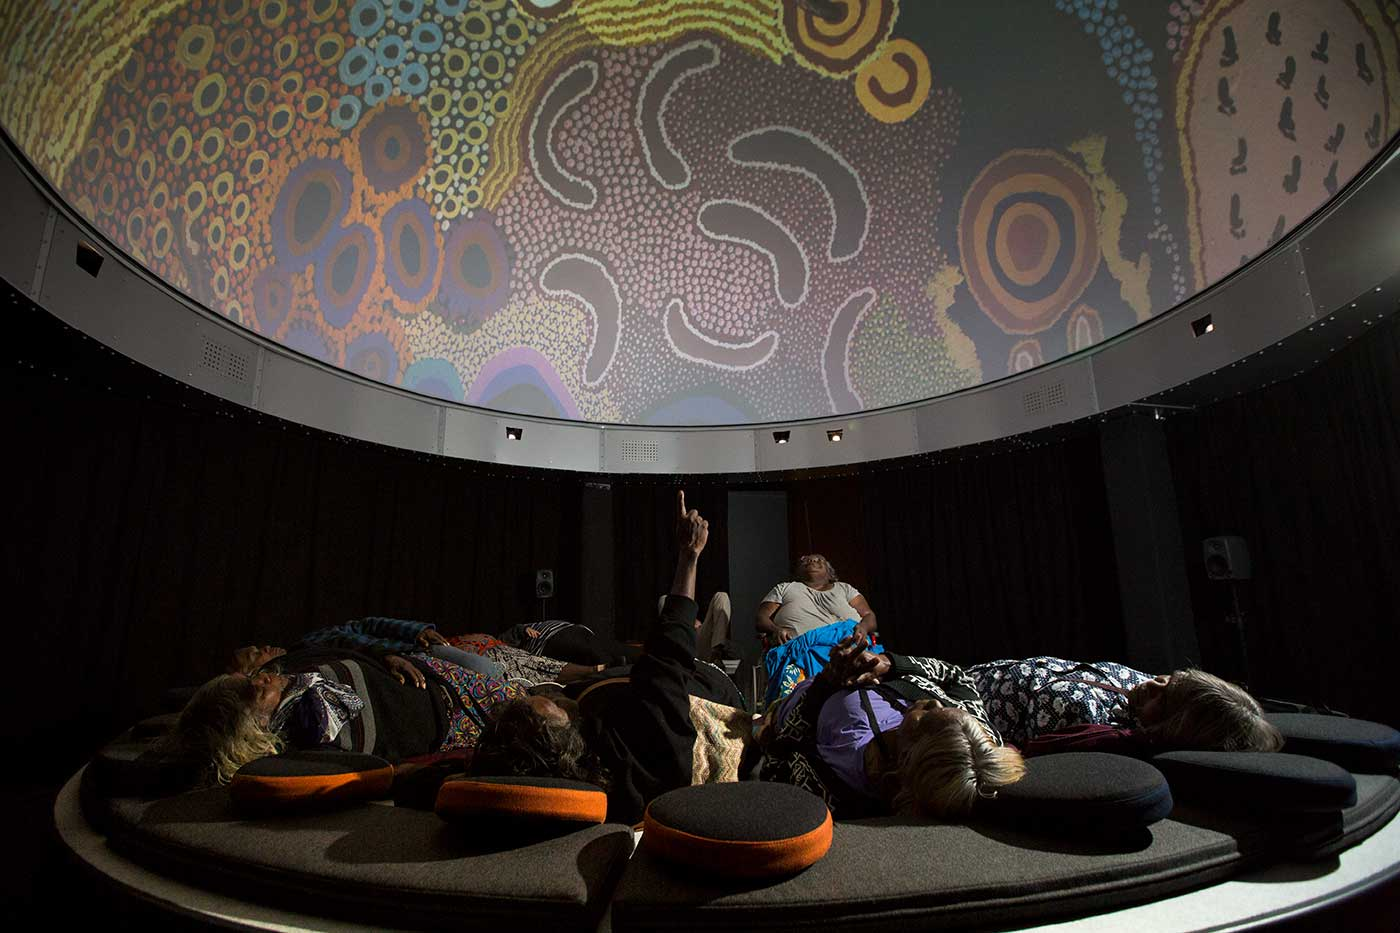 Group of women lying on padded surfaces and looking up at a dome with a digital screen - click to view larger image